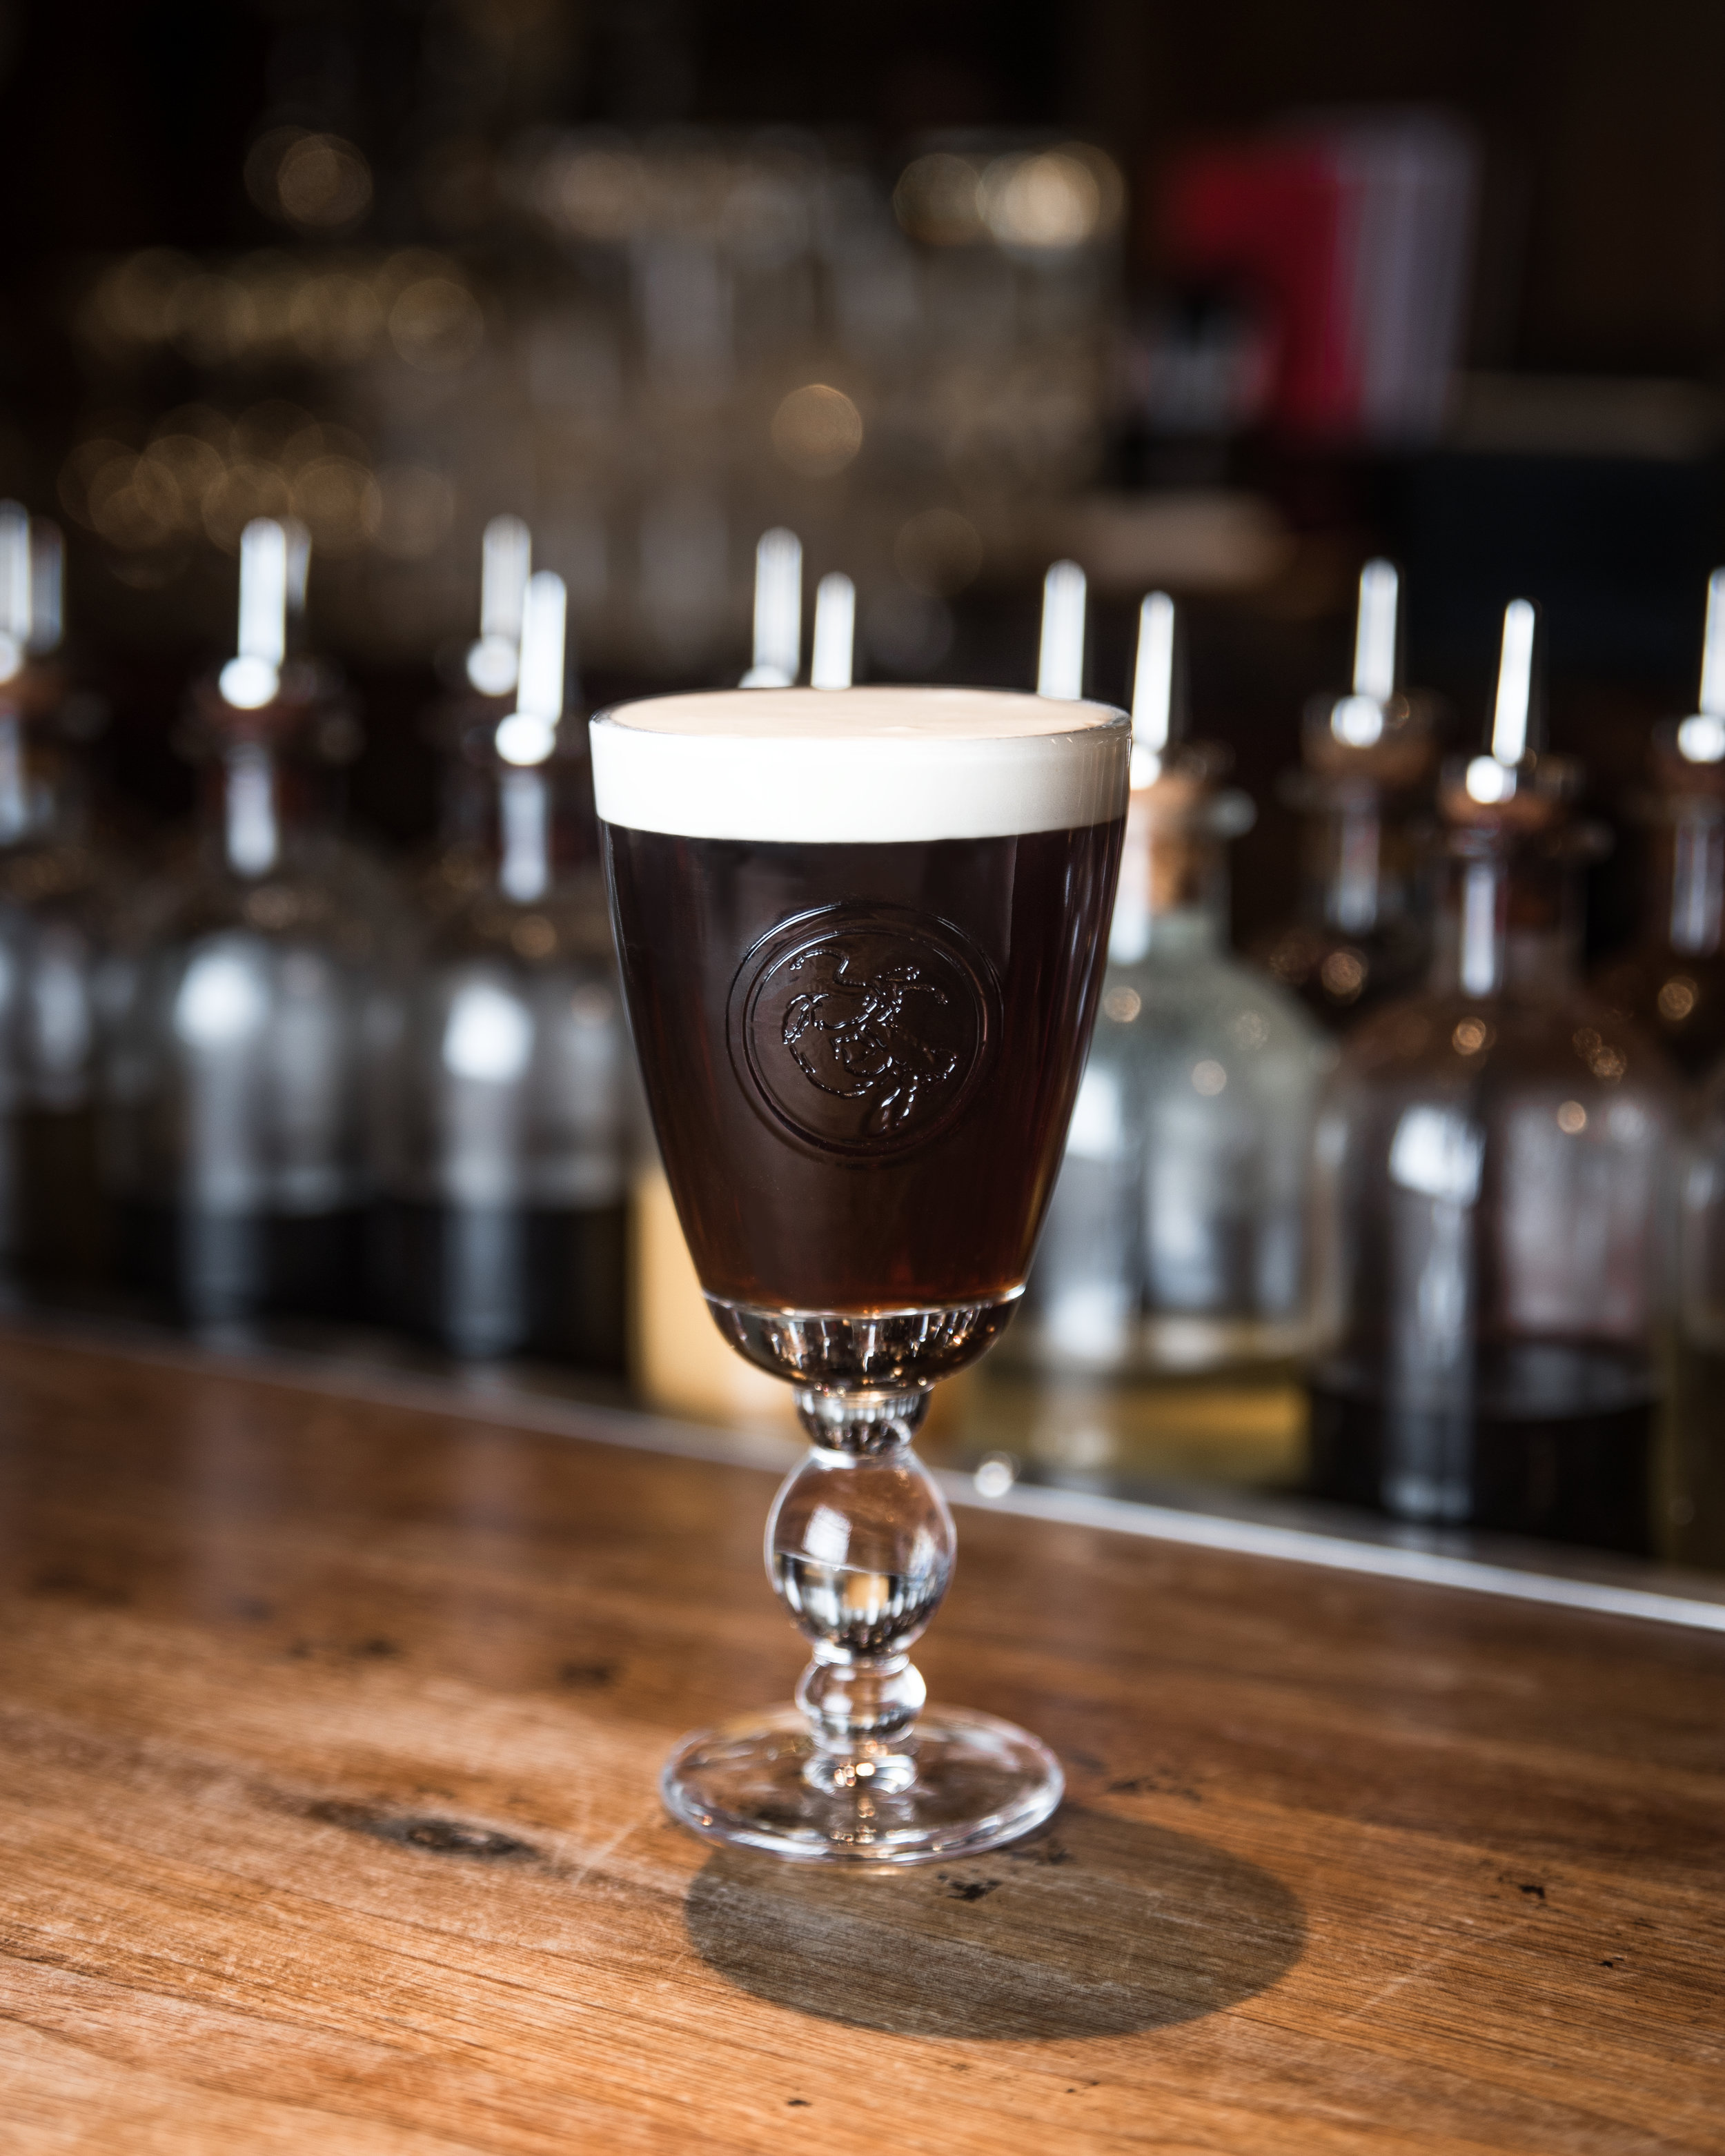 Chilled Magazine: The Dead Rabbit's Jillian Vose Teaches Us How to Make the Perfect Irish Coffee